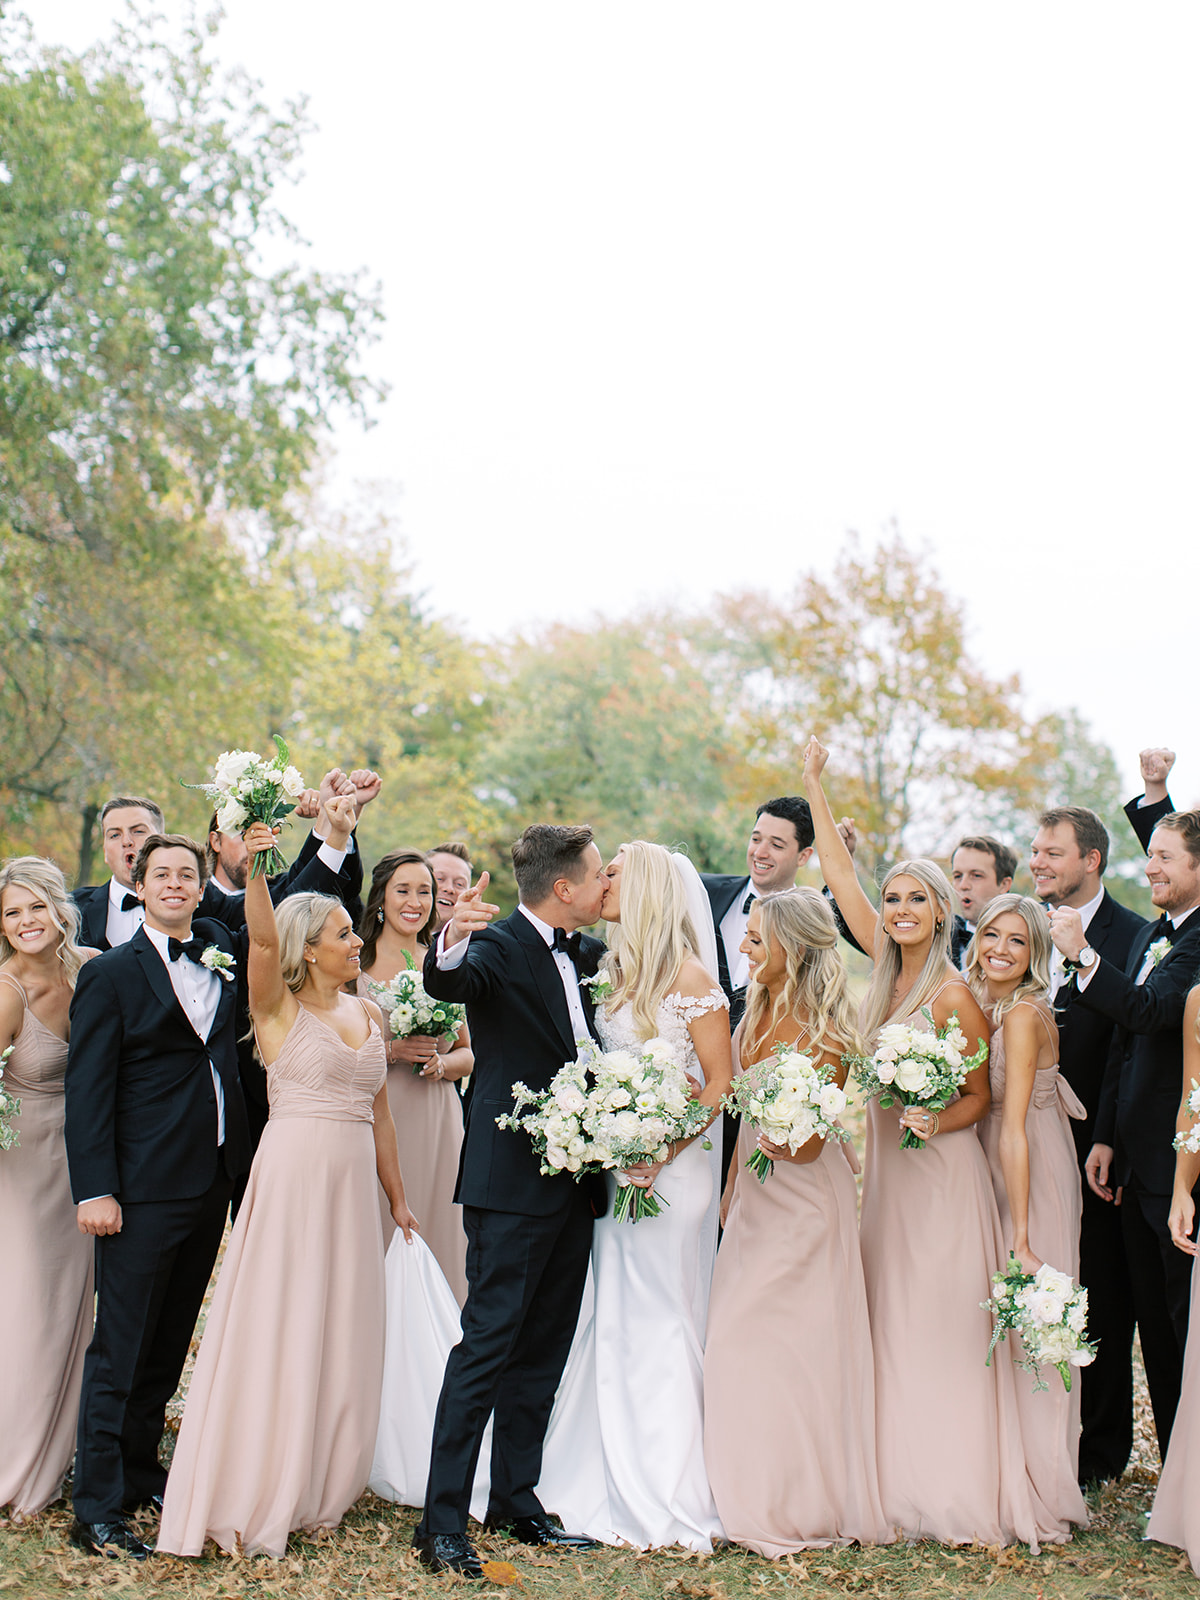 Bridal party cheering on bride and groom kissing